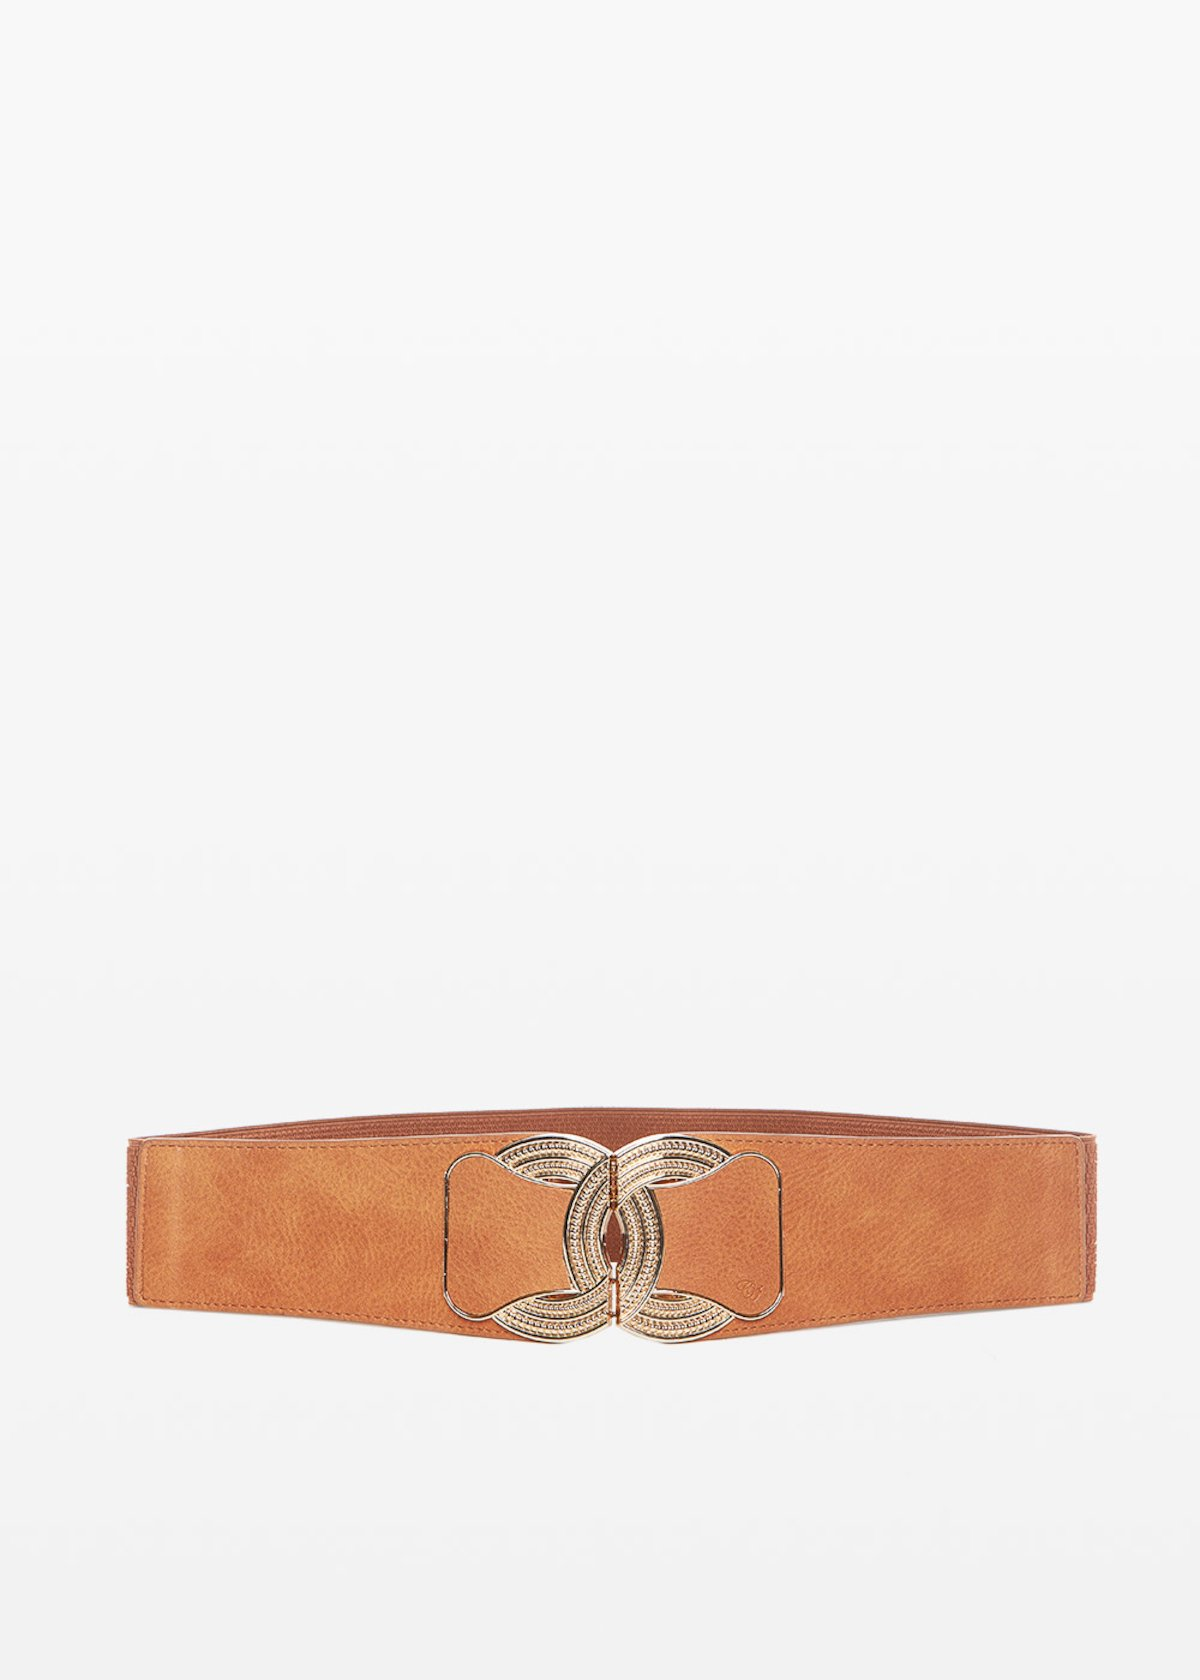 7bc2a59663df4 Colty Faux Leather Belt With Metal Buckle | Camomilla Italia